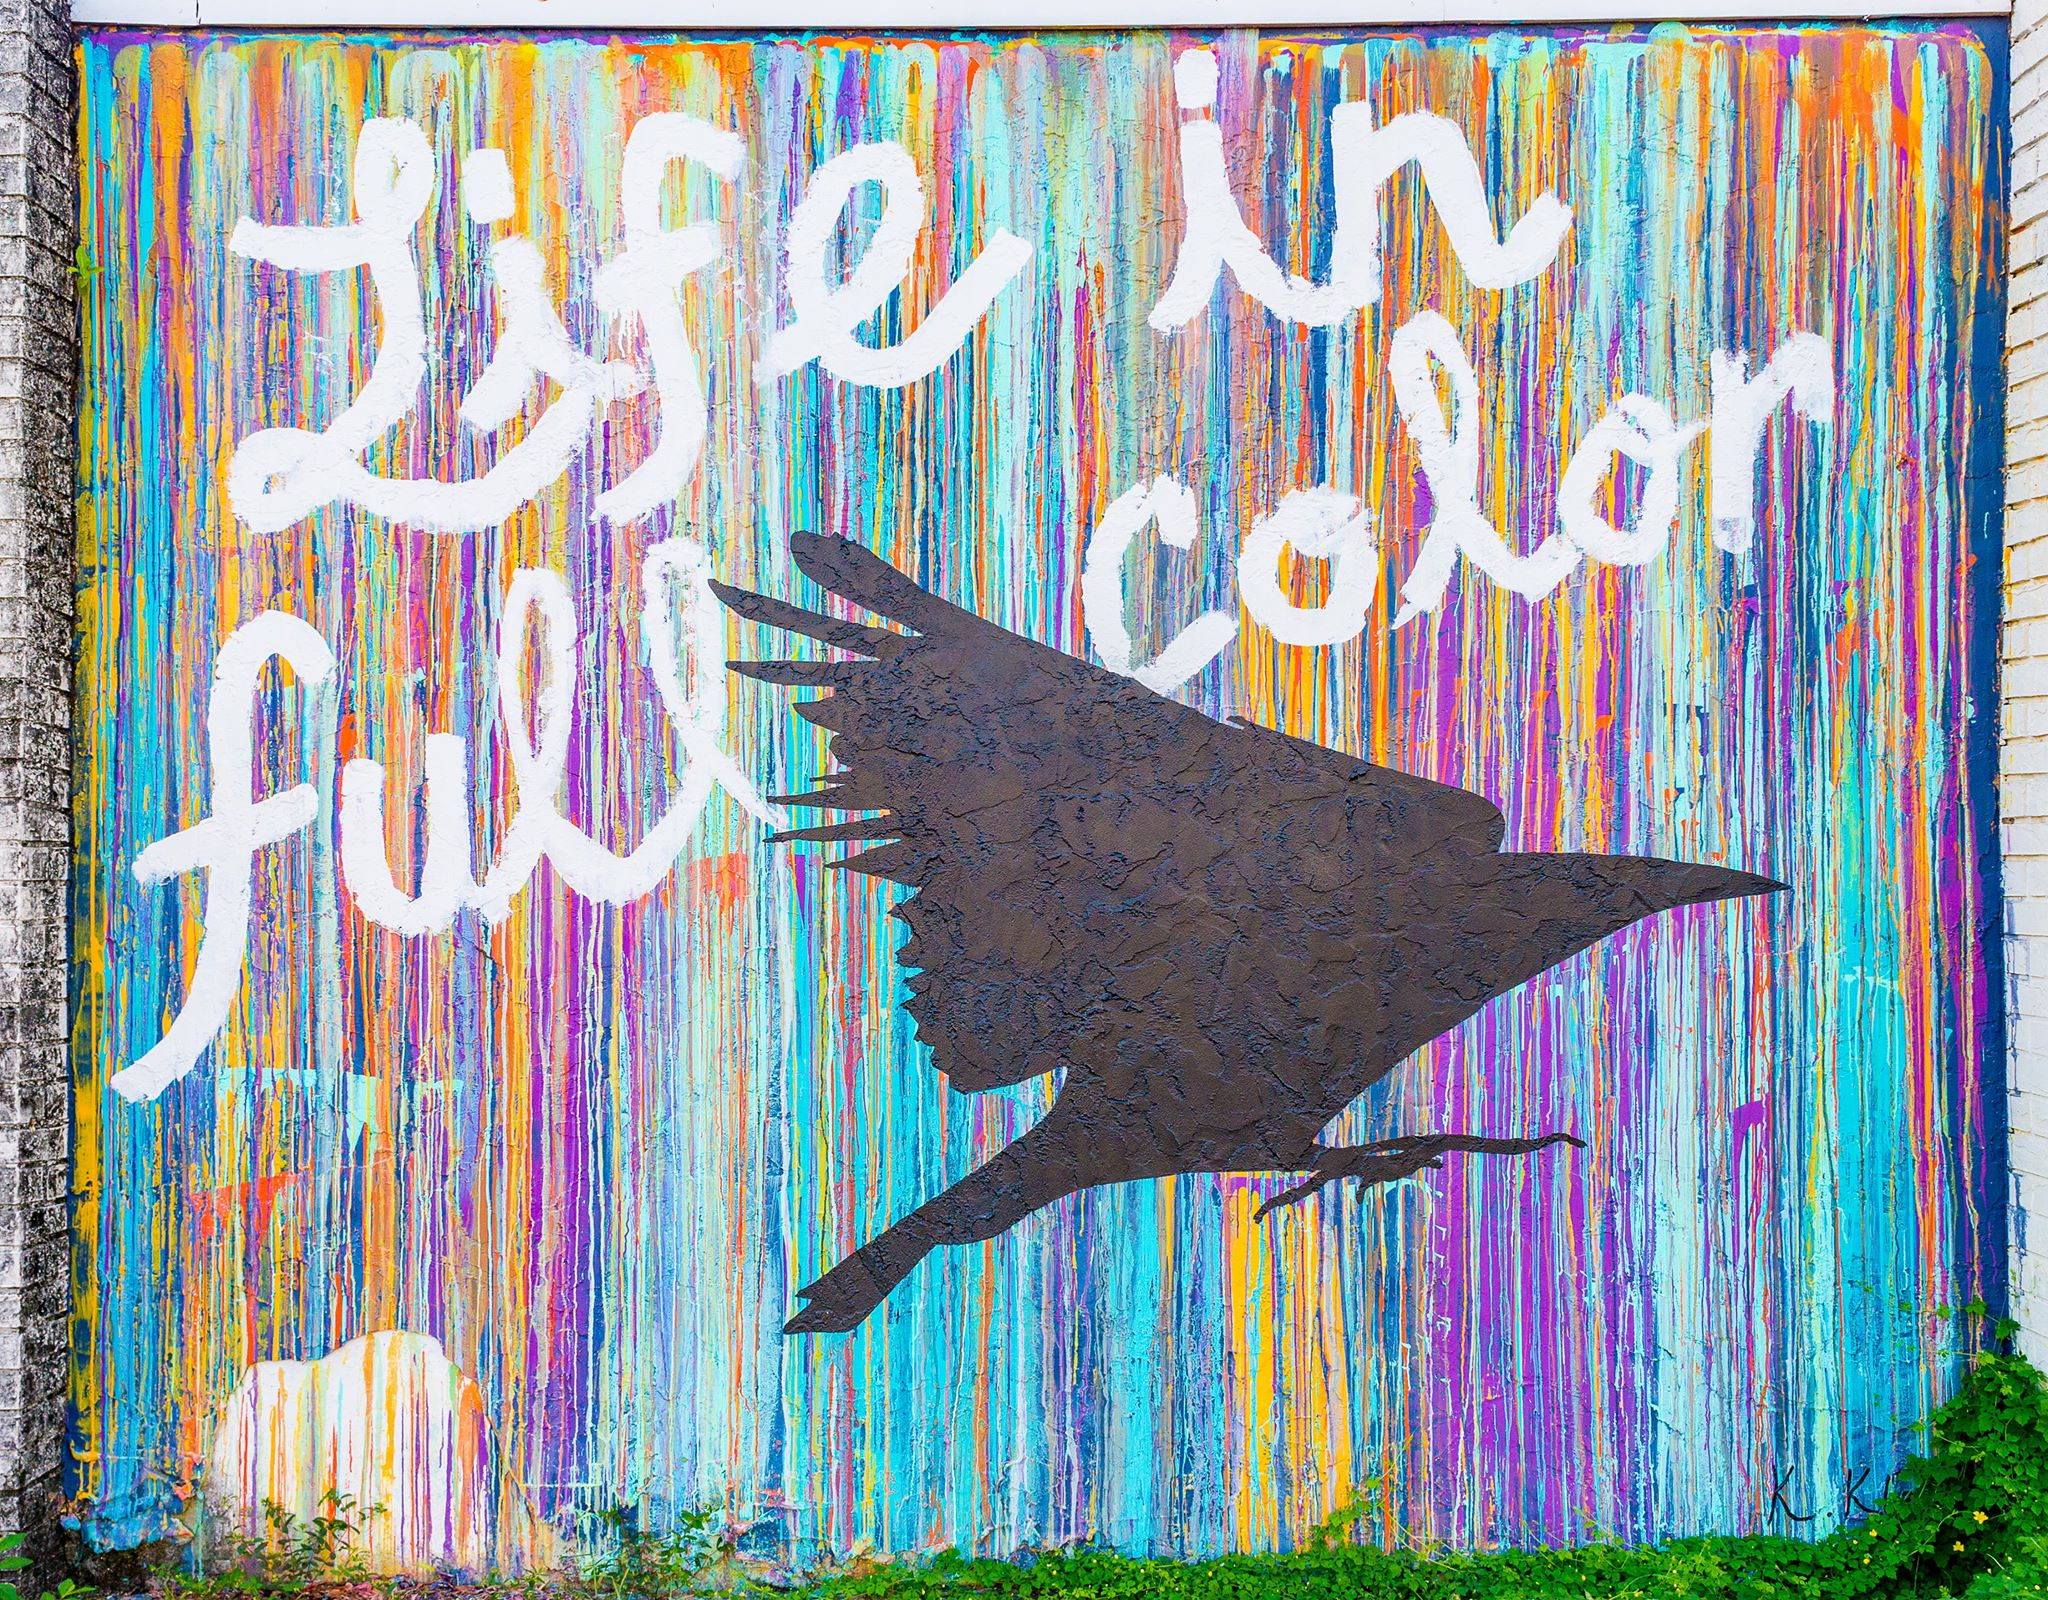 Life in Full Color Mural EGAD